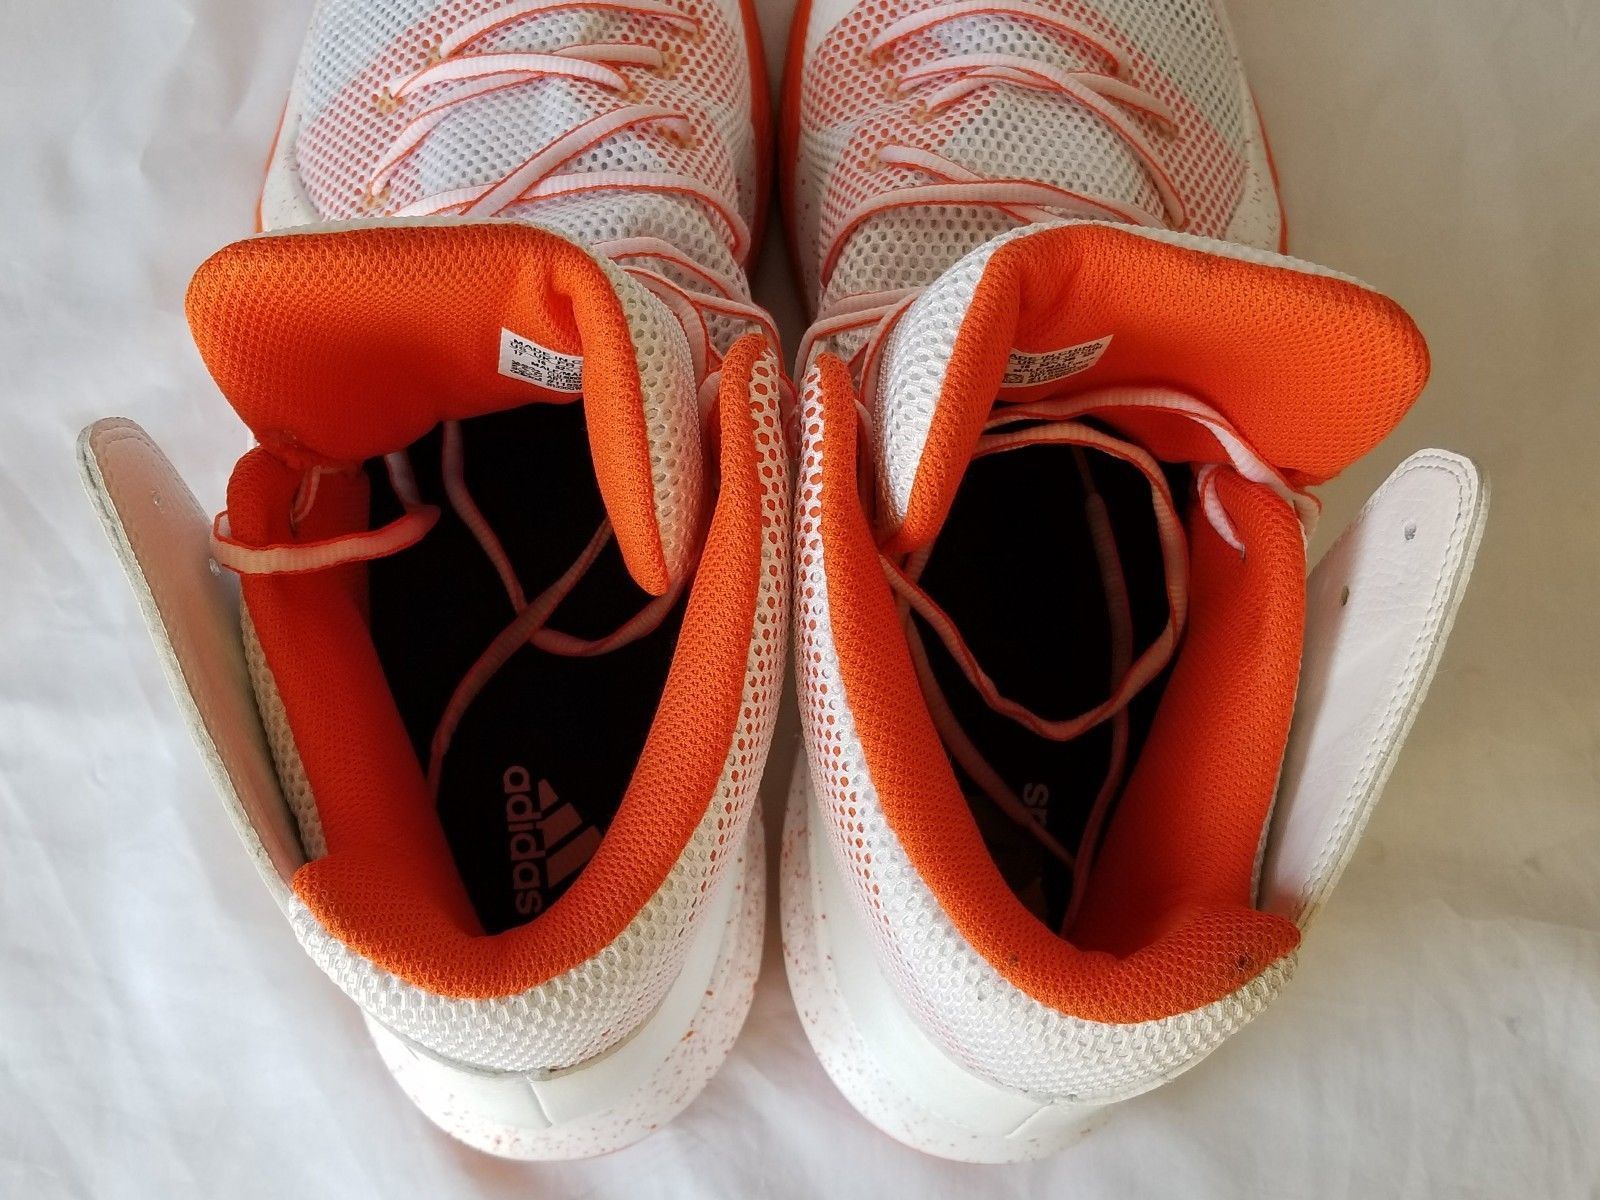 83c5f070ddb2a Adidas Men s White Orange Crazy Bounce Basketball Shoes Size 17 B39304